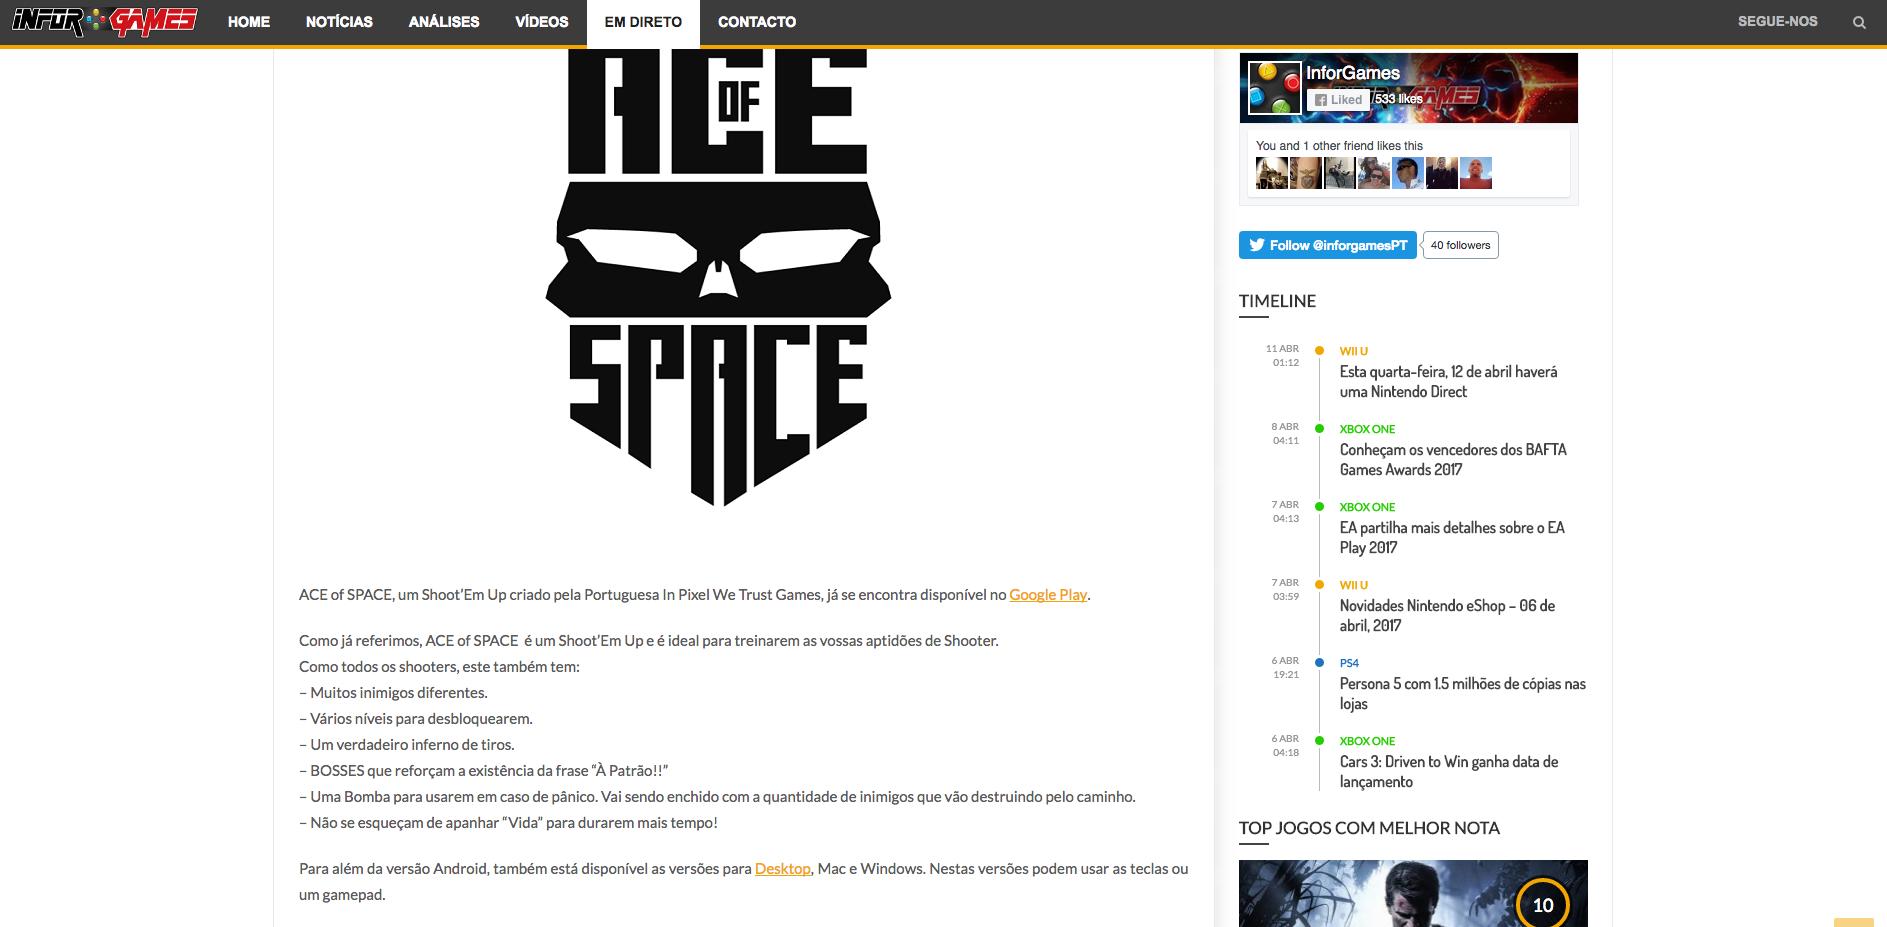 Review of ACE of SPACE